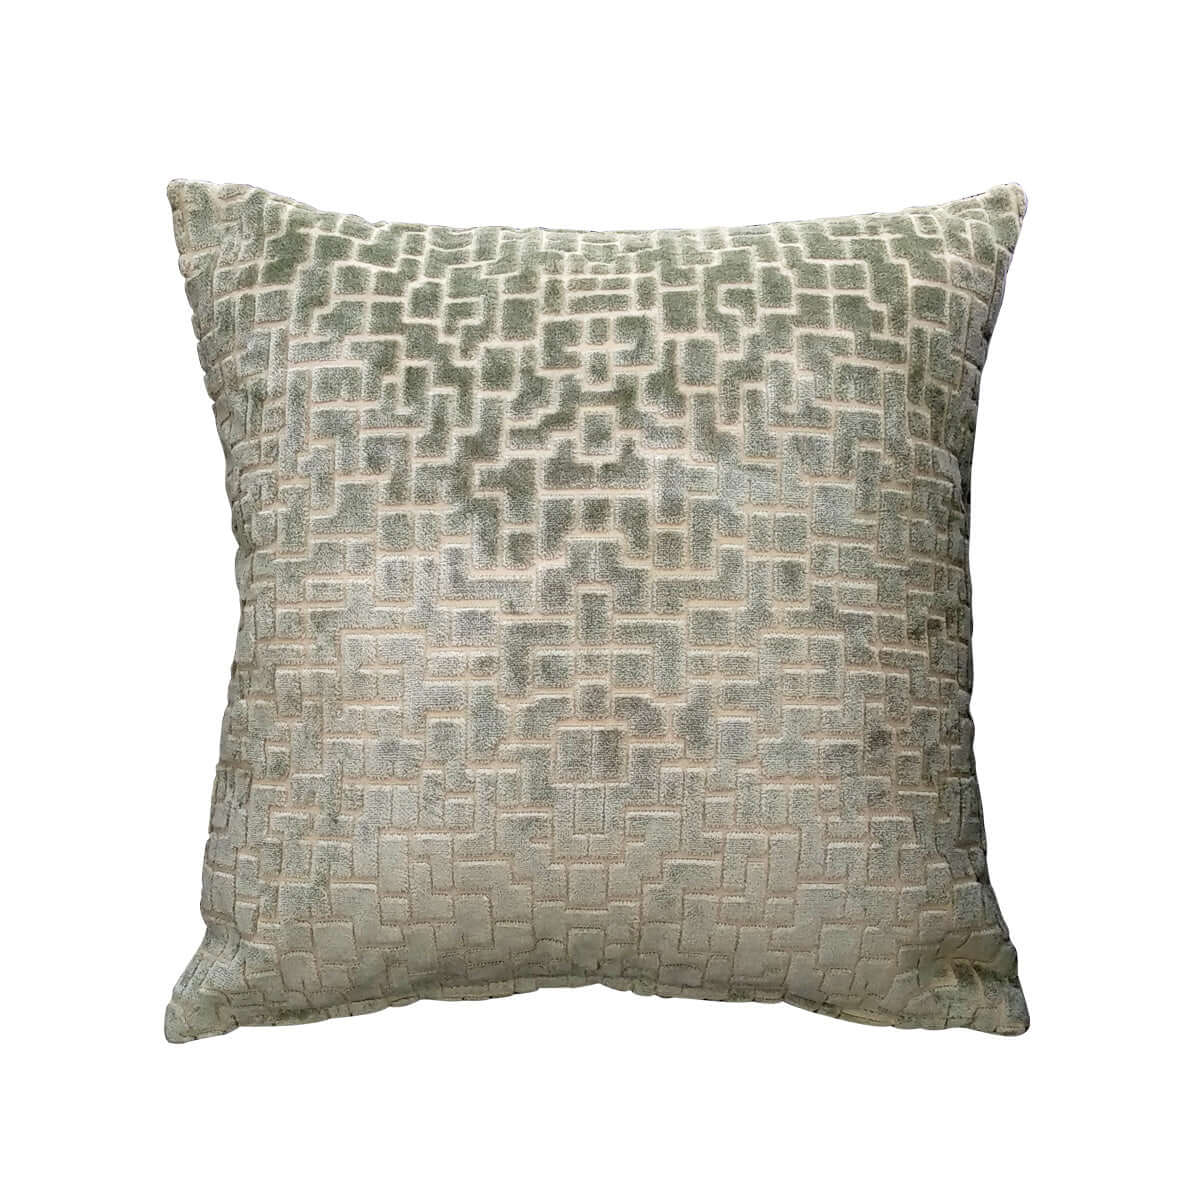 Tara Verde Cushion Cover - Vinoti Living